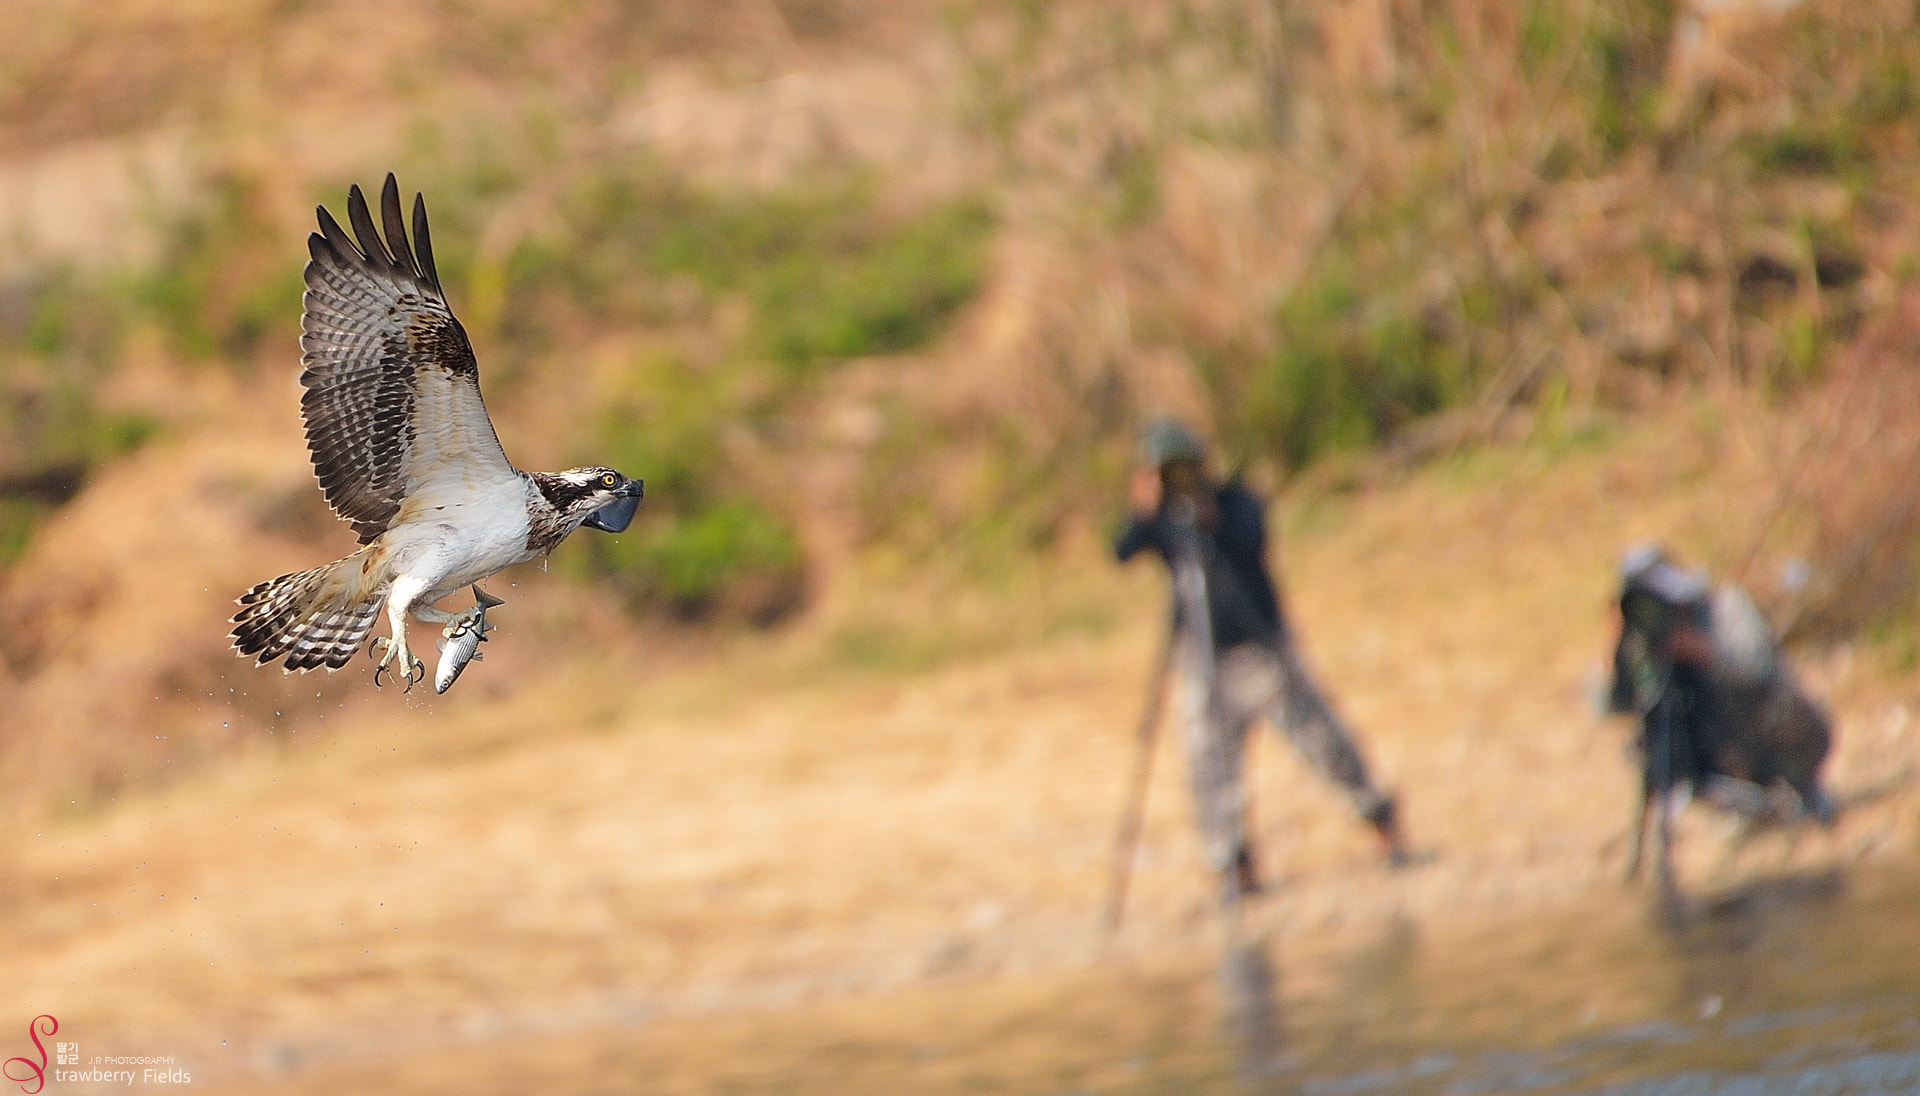 Photograph Bird & Humans by Jung-Rae Cho on 500px